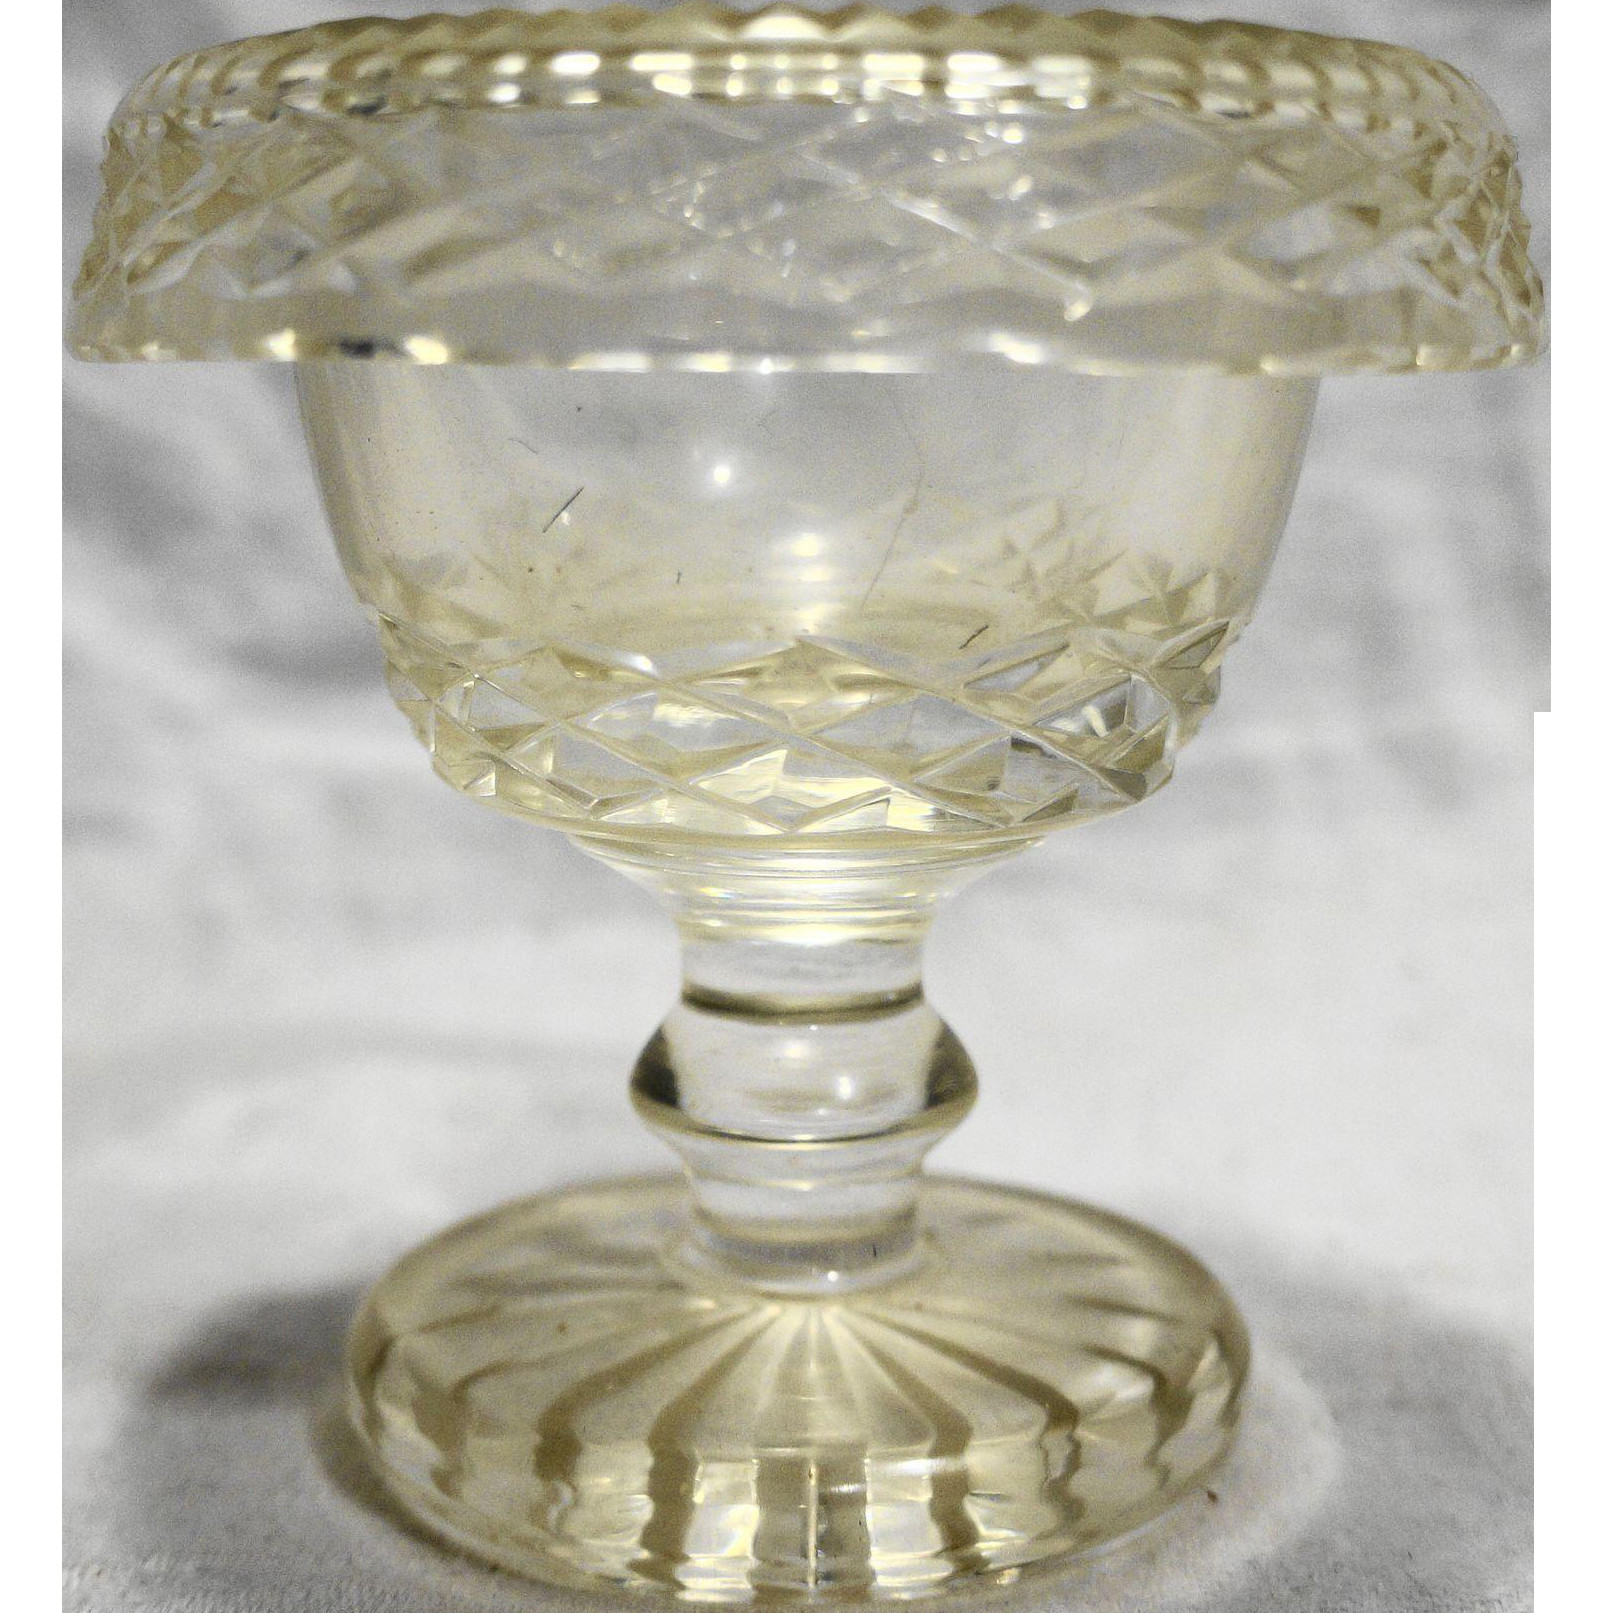 waterford rose bowl vase of waterford crystal master salt rolled rim 3 5 8 in waterford in waterford crystal master salt rolled rim 3 5 8 in